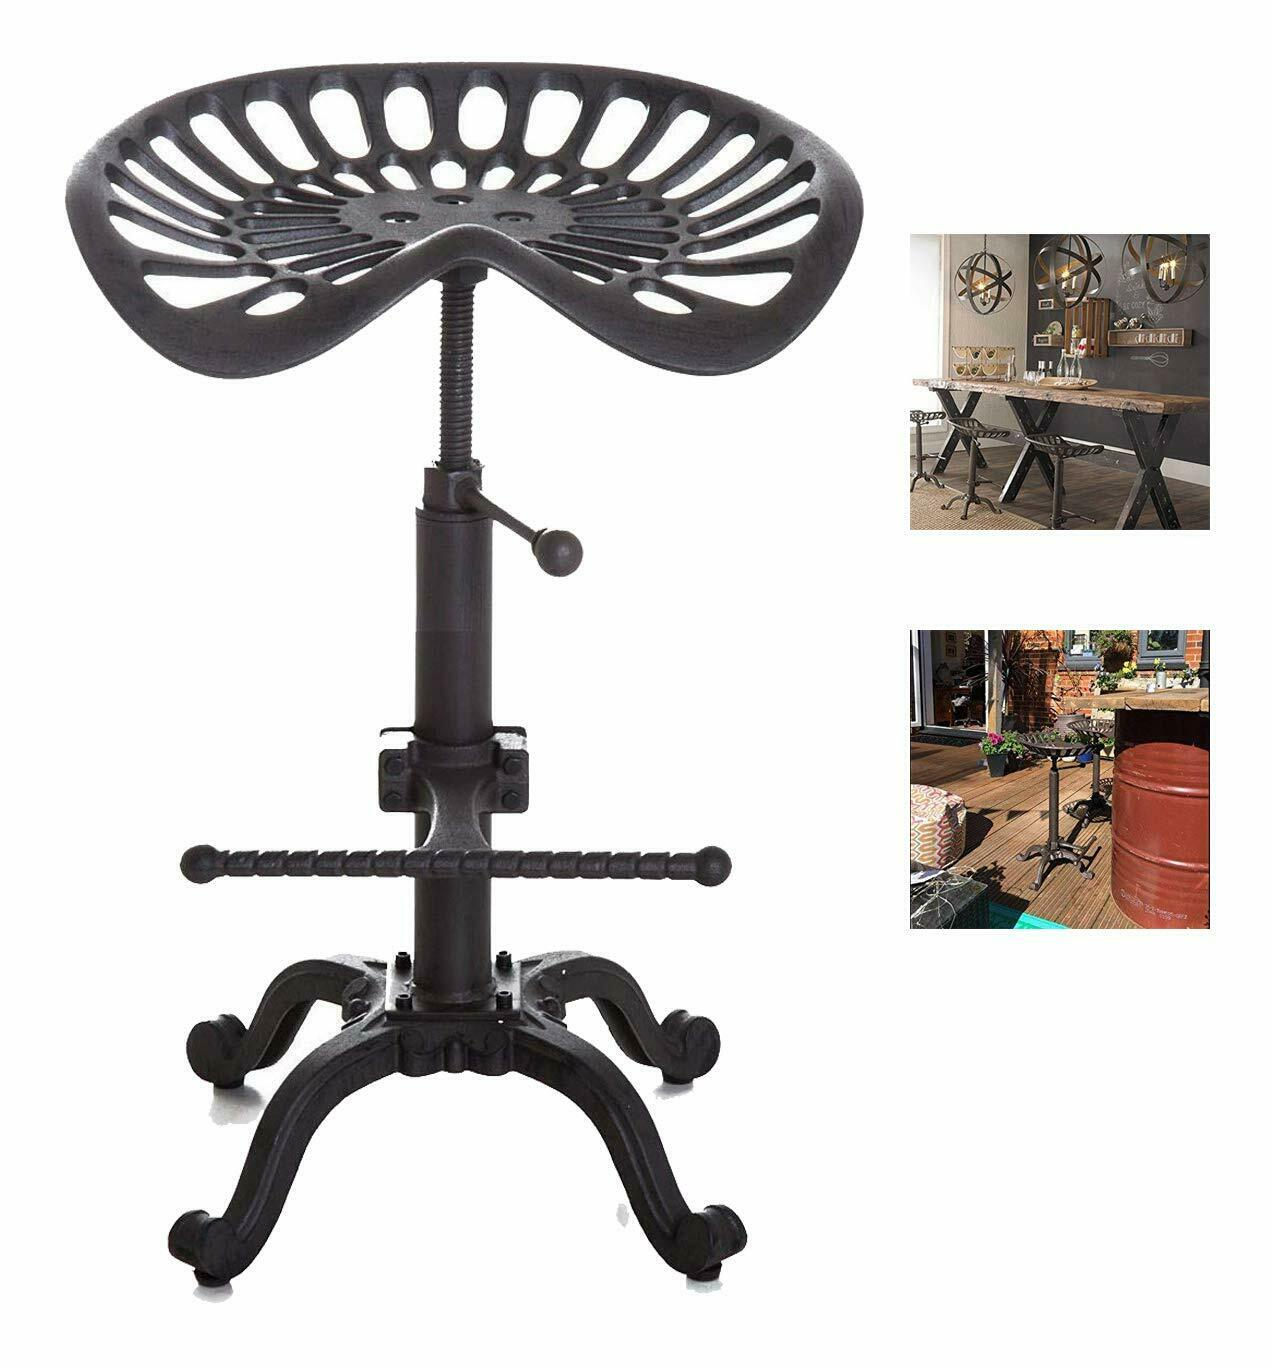 Industrial Metal Farmhouse Tractor Bar Stool Height Adjustable Counter Chair With Swivel Seat Scrolled Footrest (USA Stock)